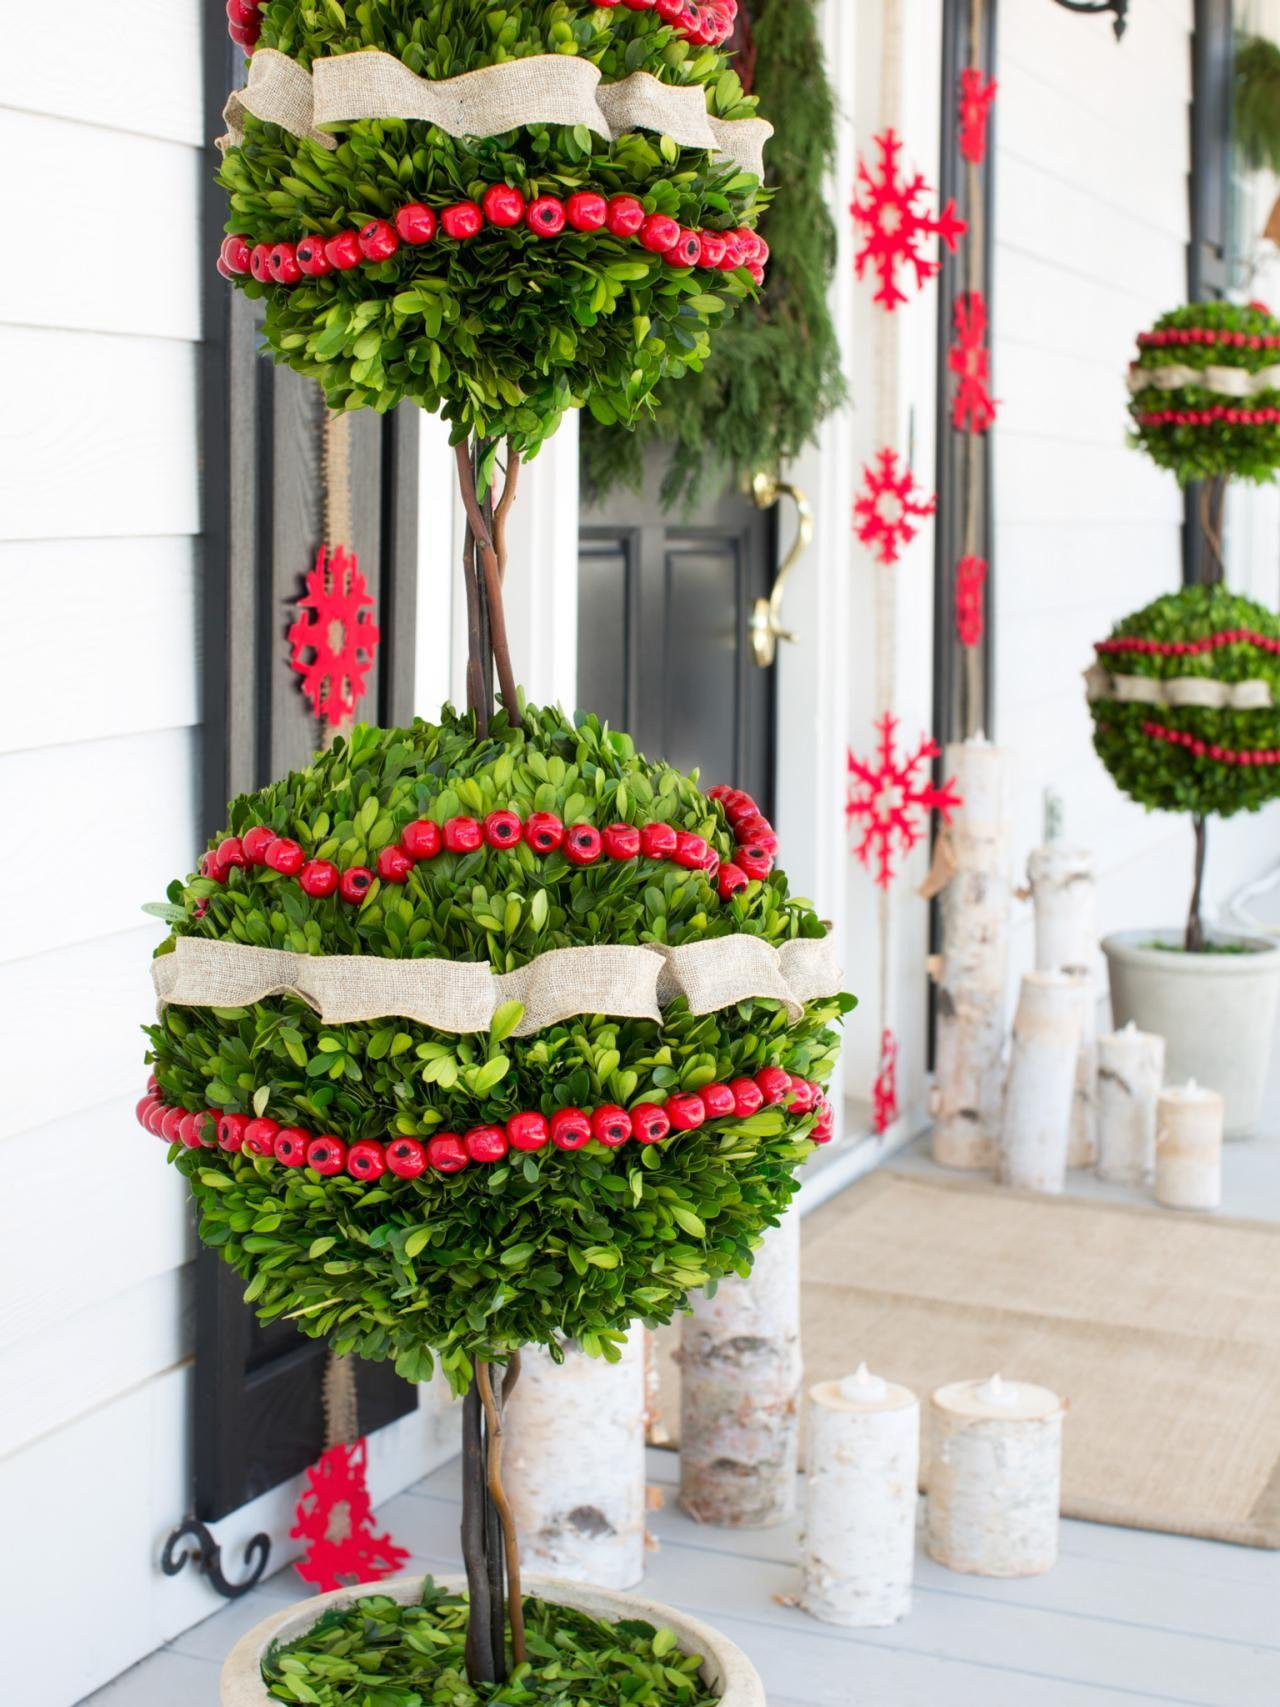 Best ideas about Outdoor Christmas Decor . Save or Pin 50 Best Outdoor Christmas Decorations for 2019 Now.